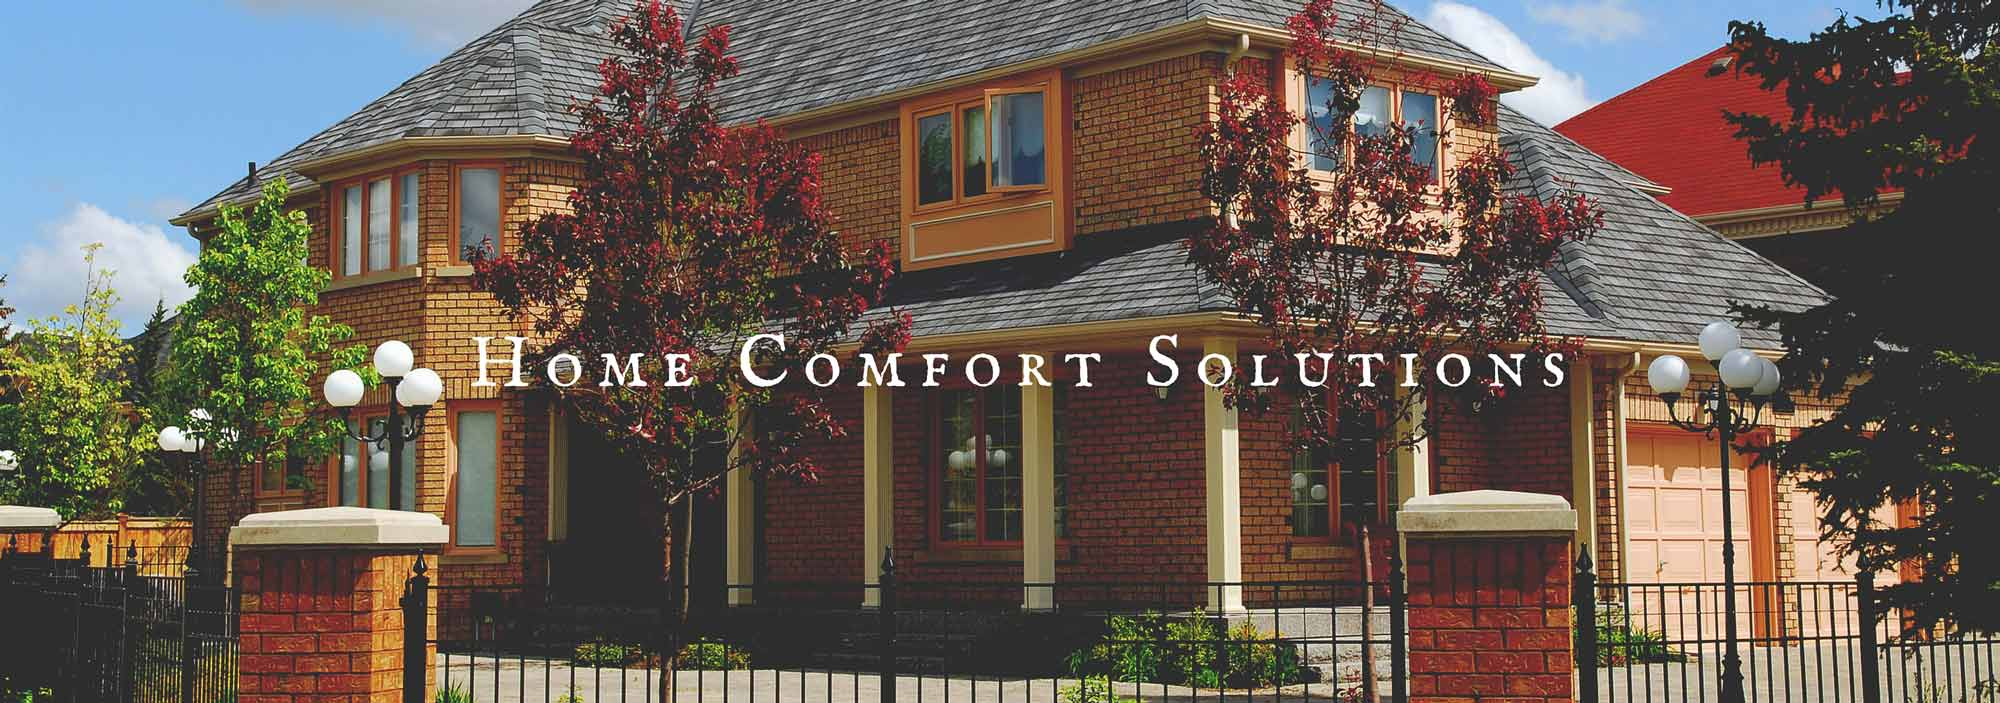 Cappy-Home-Comfort-Solutions